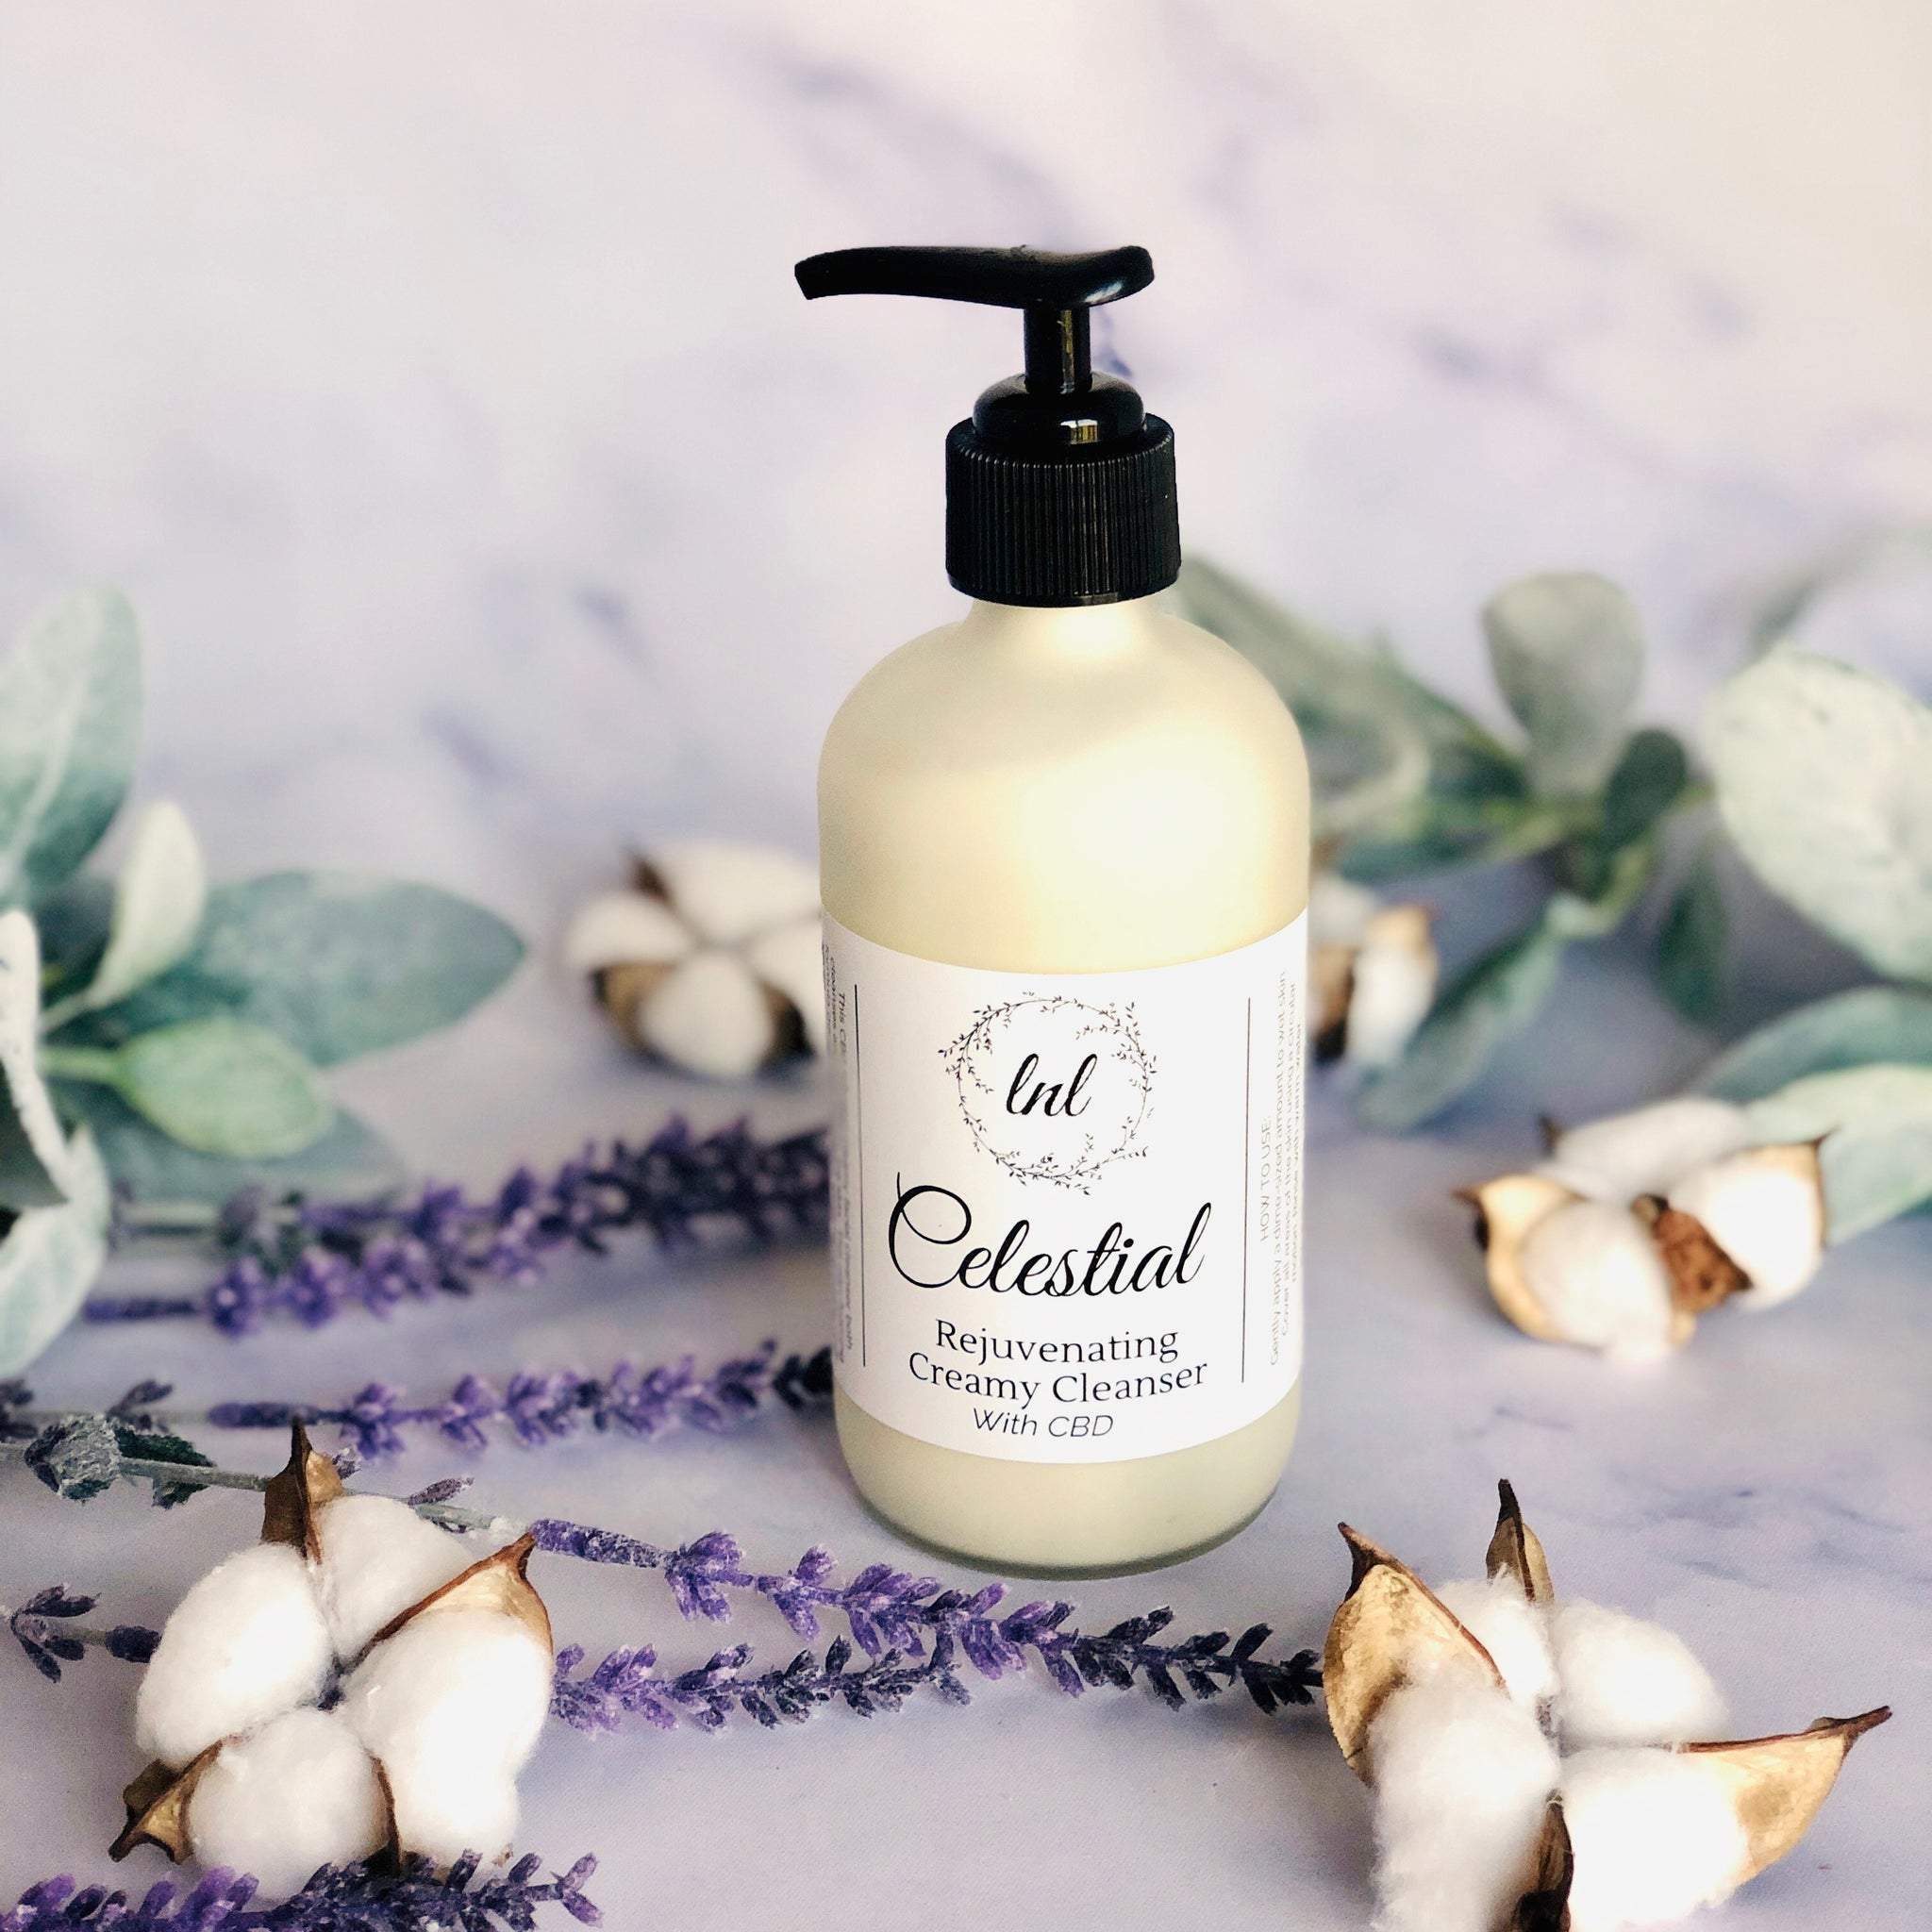 Celestial Rejuvenating Facial Cleanser